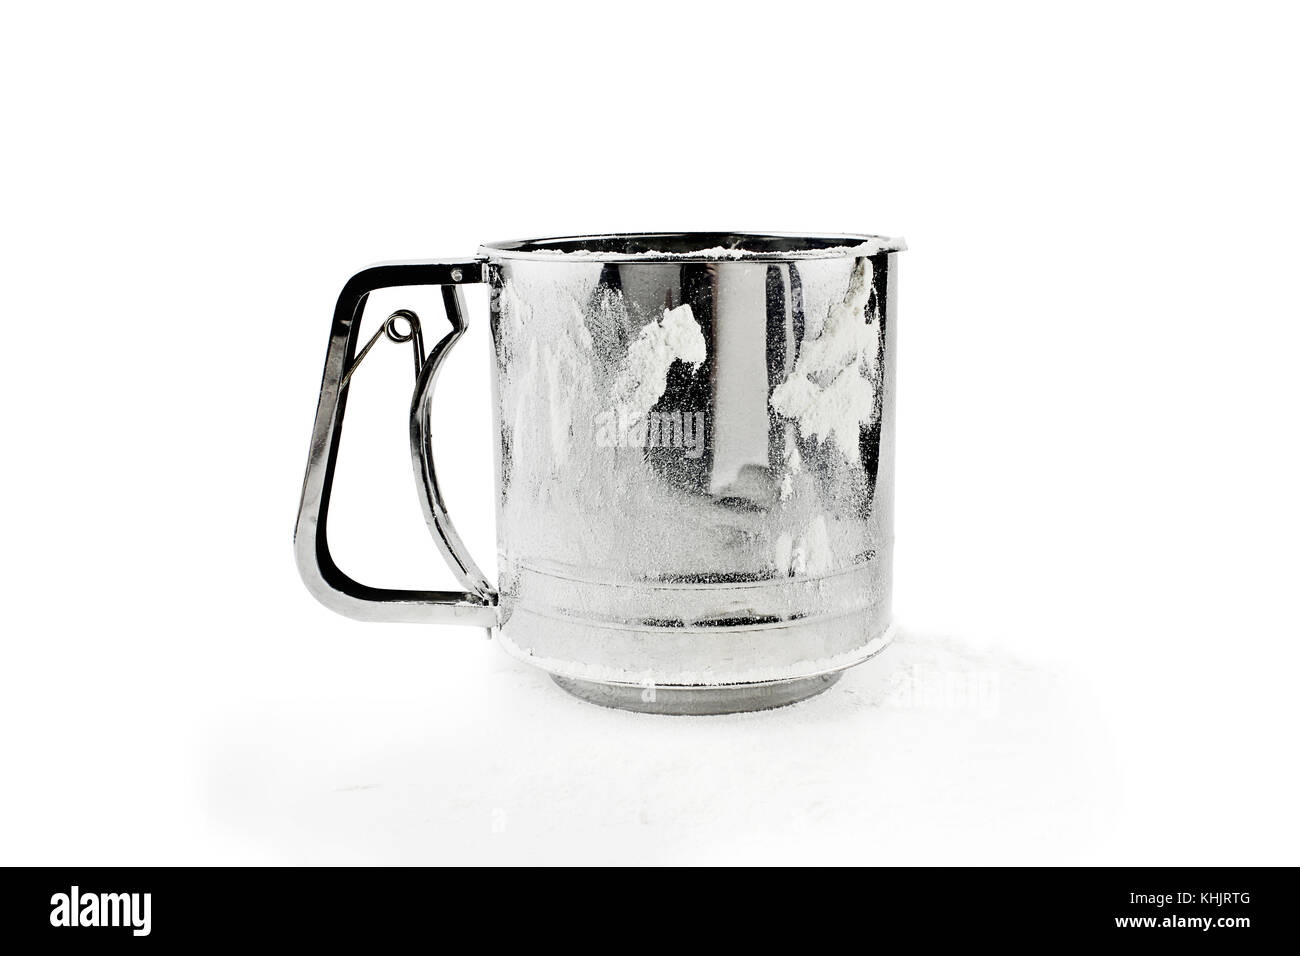 Metal flour sifter with flour dusted on the side and beneath isolated over a white background. - Stock Image